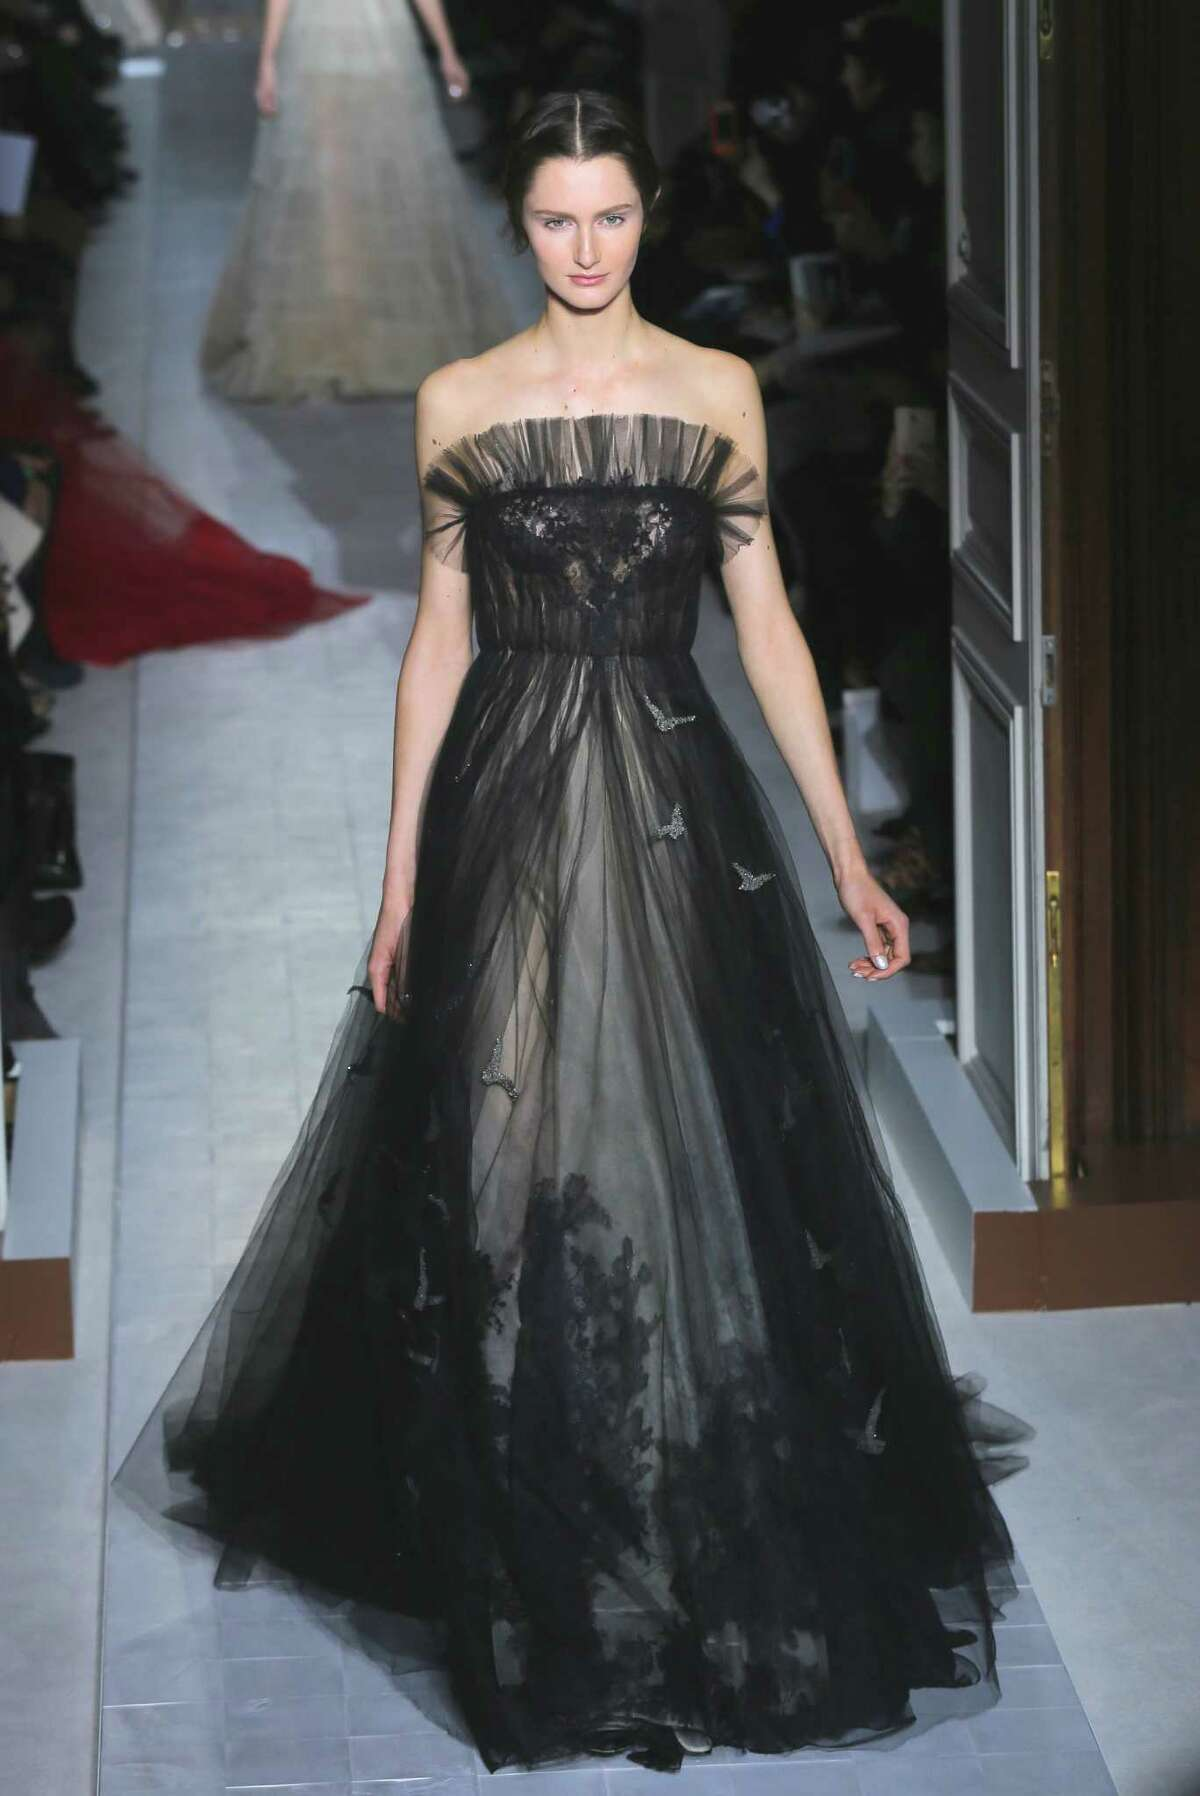 A model wears a creation by fashion designers Maria Grazia Chiuri and Pier Paolo Piccioli for Valentino.